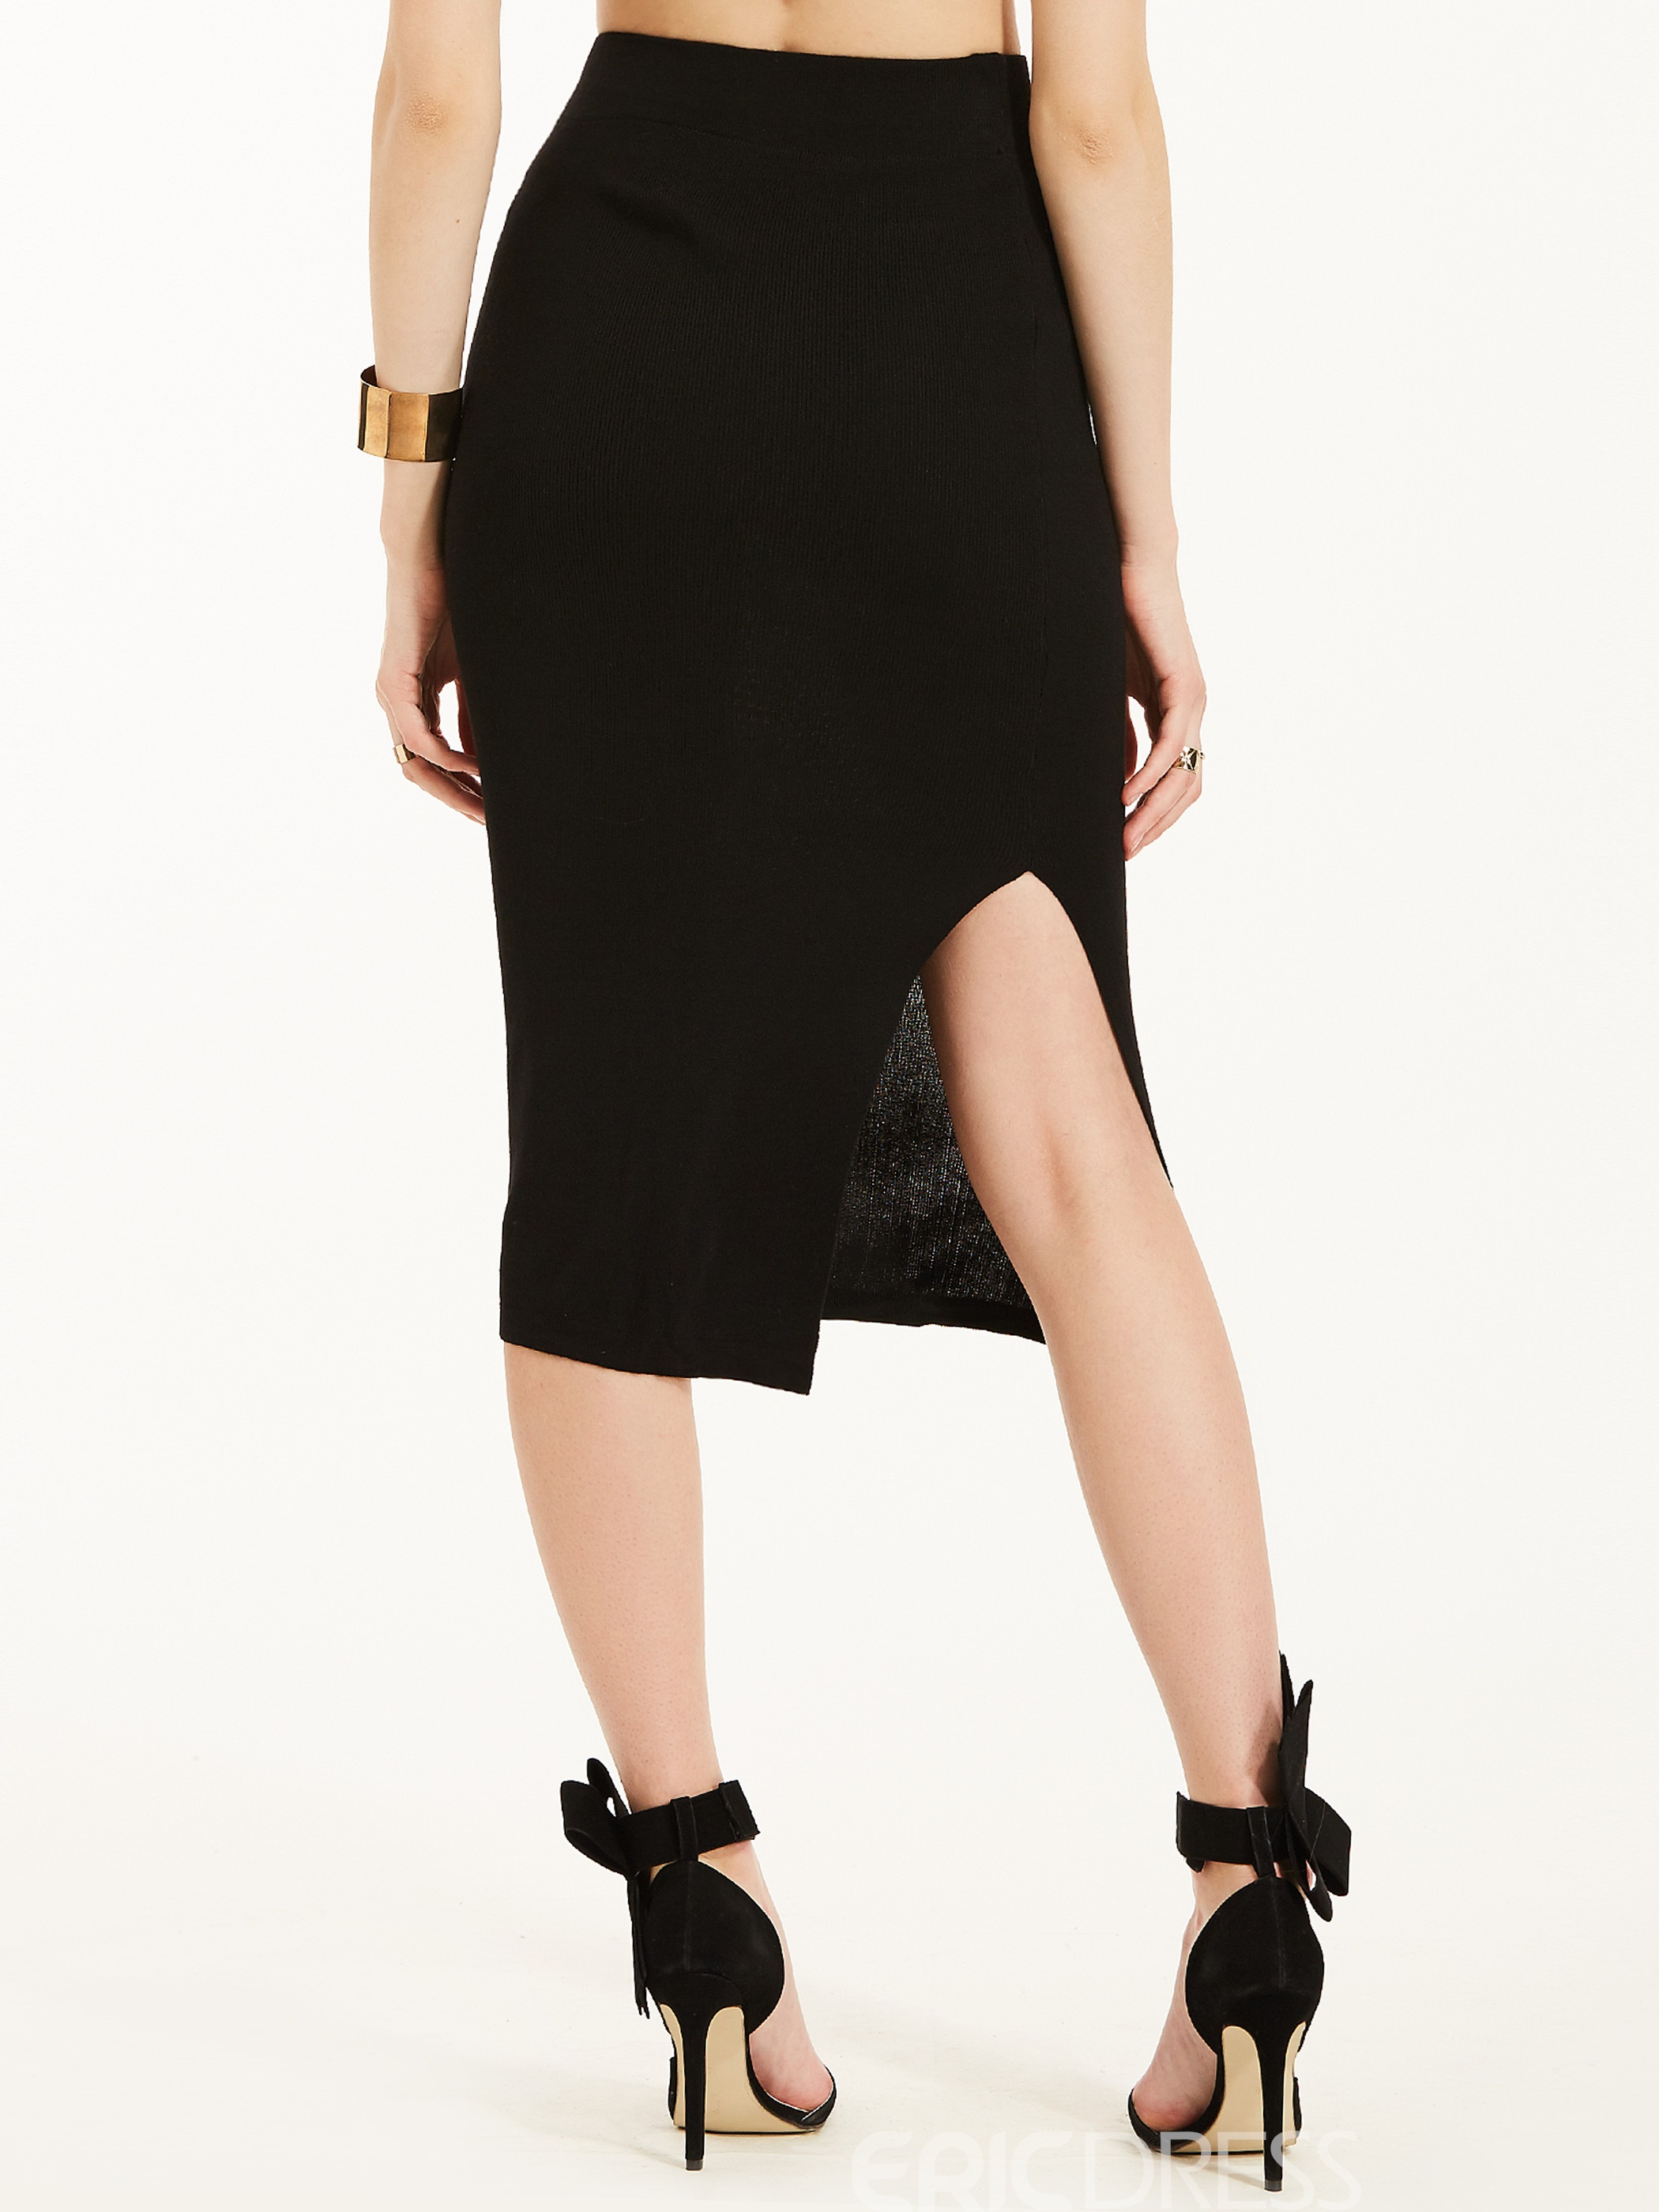 Mid-Waist Mid-Calf Plain Asymmetrical Skirt